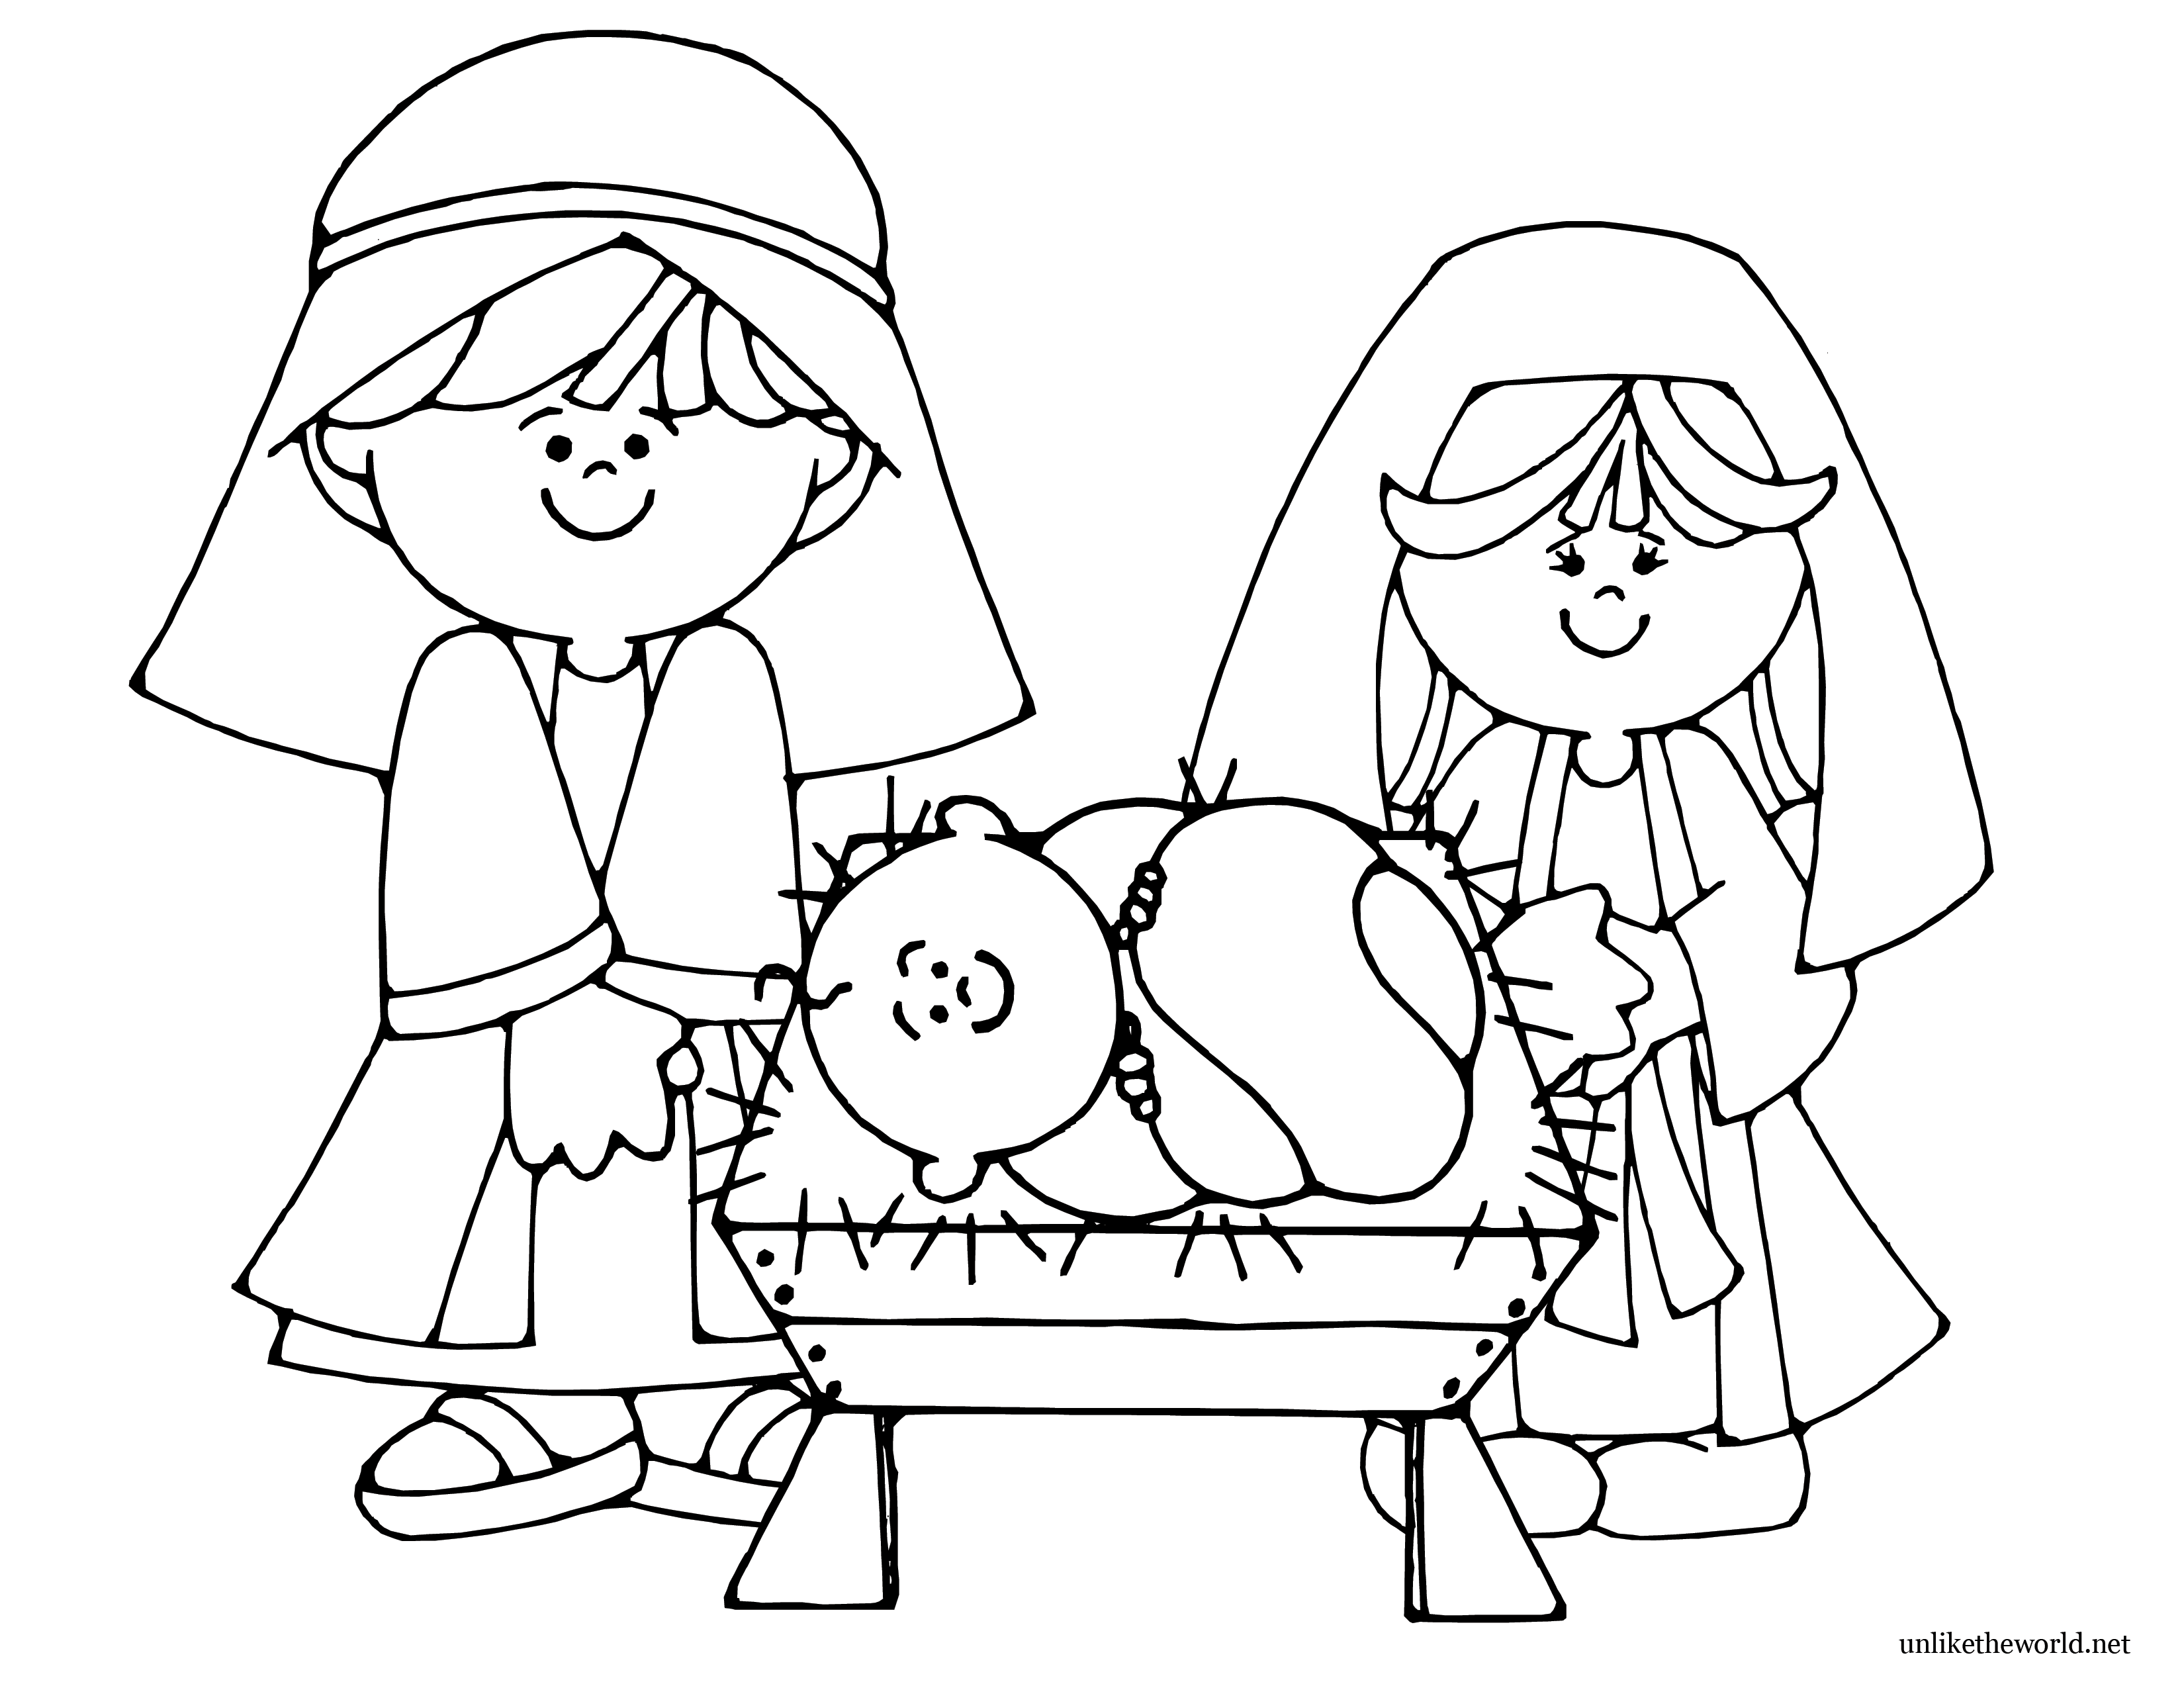 Free Nativity Coloring Pages Printable - Coloring Home